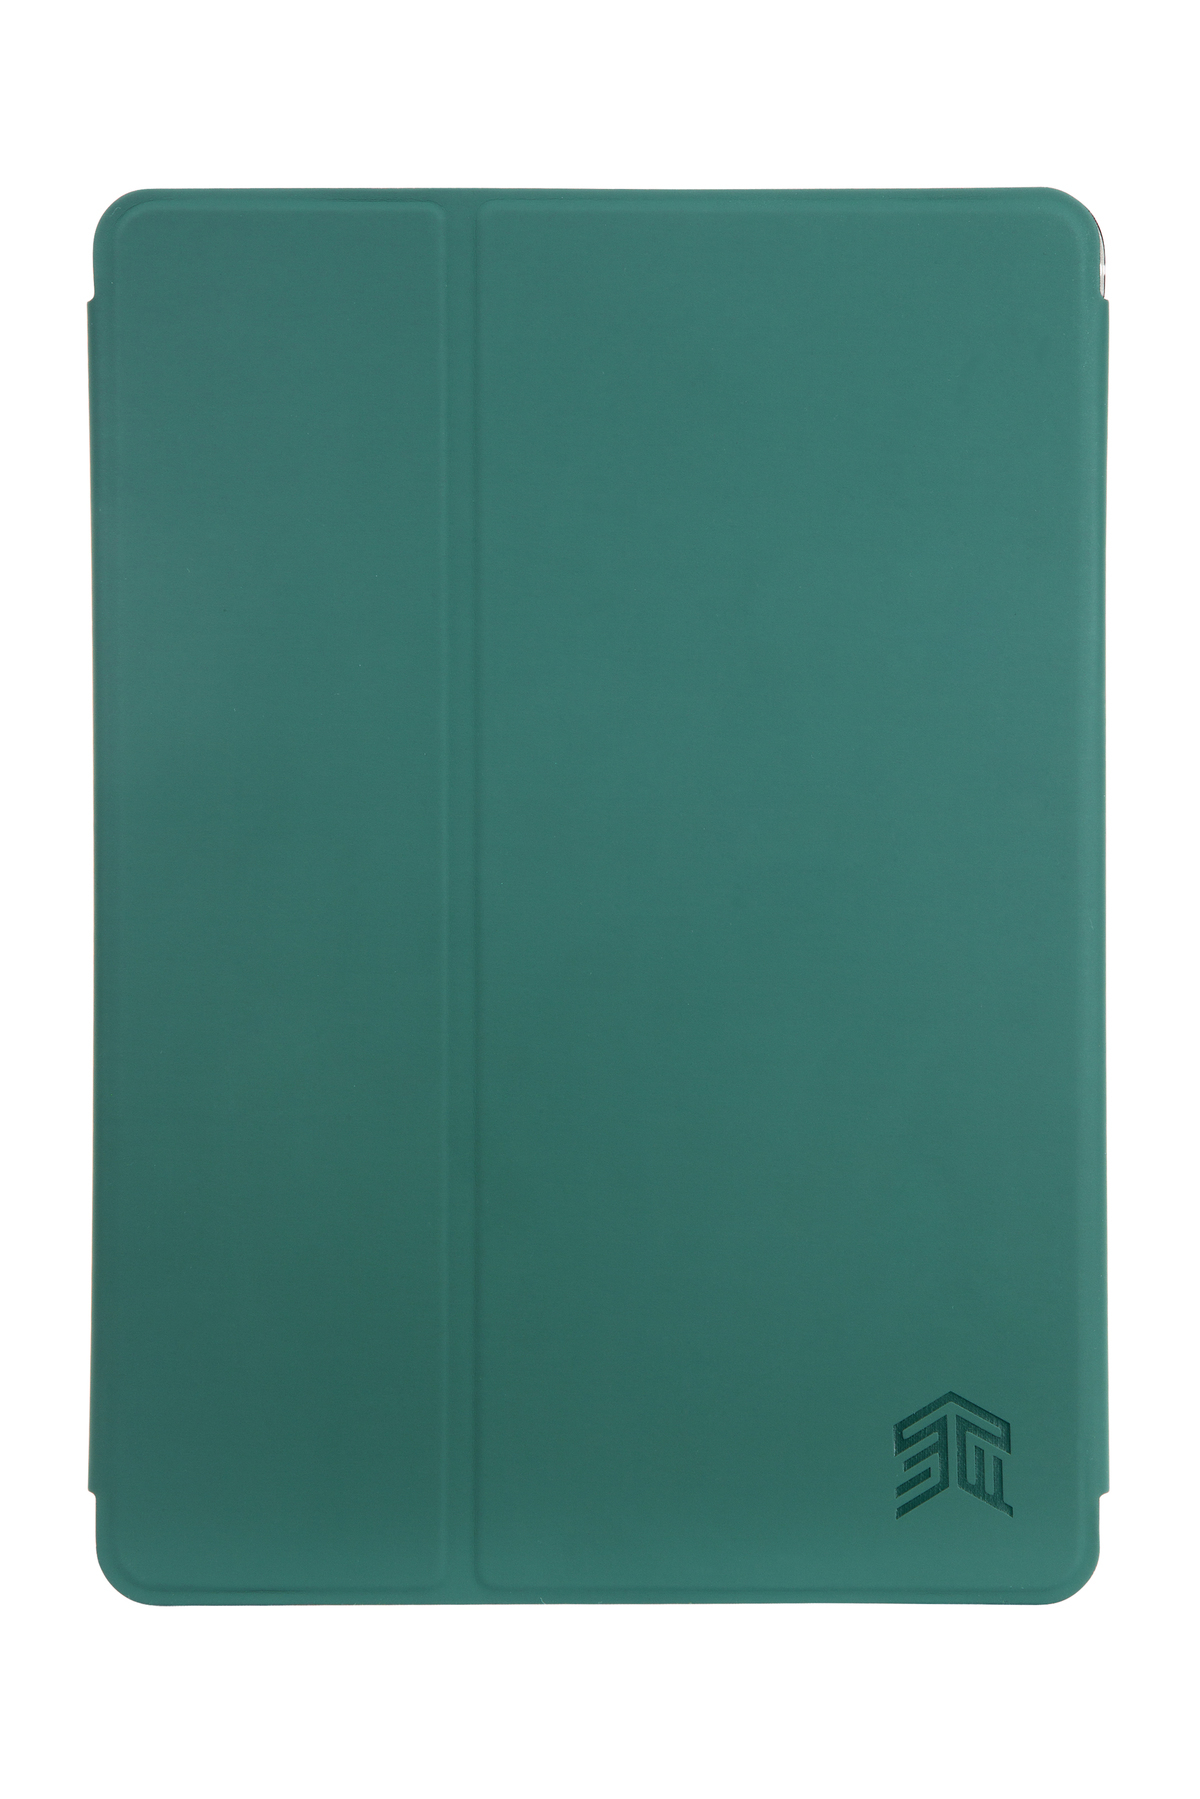 STM-2017-Studio-iPad-5thGen-Dark-Green-Front.jpg